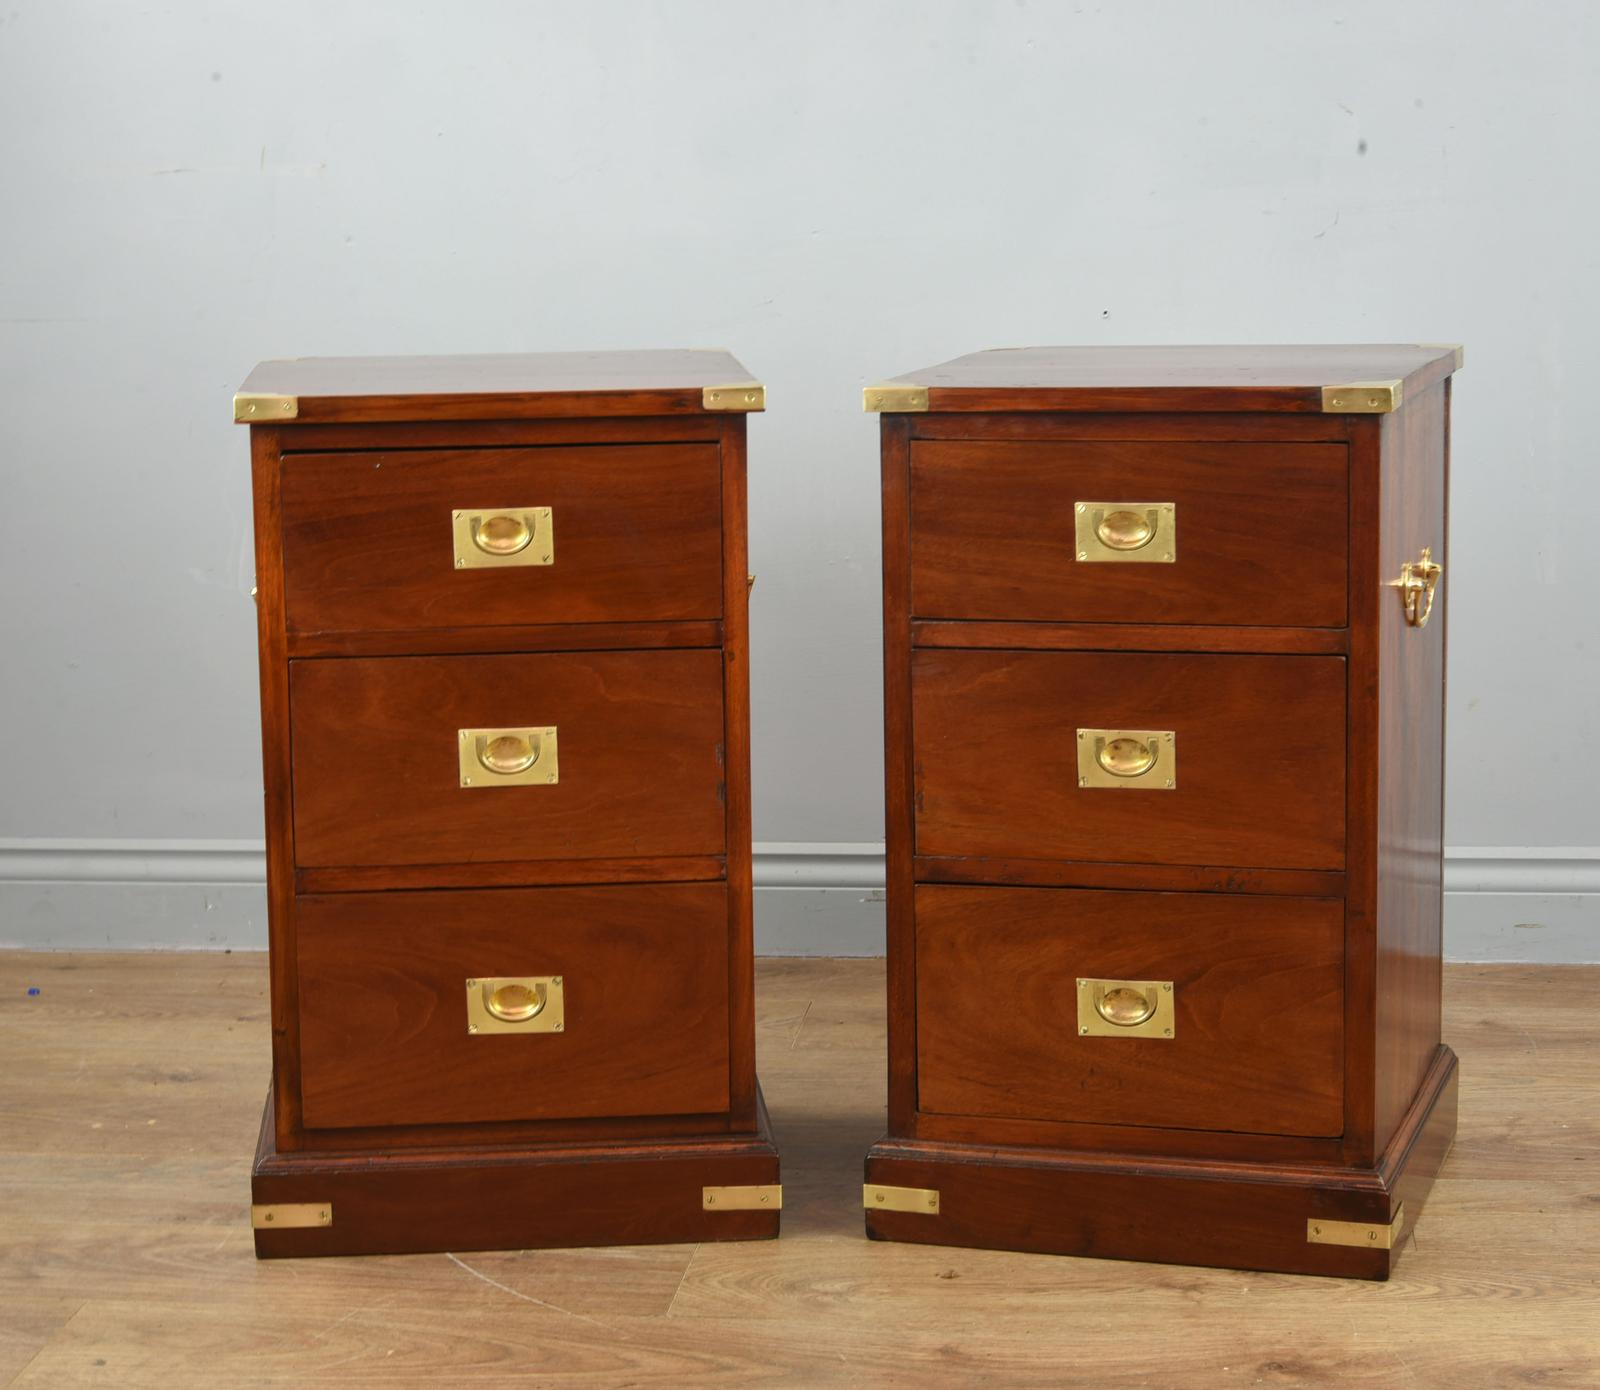 Superb Antique Pair of Mahogany Campaign Bedside Chests of Drawers (1 of 1)